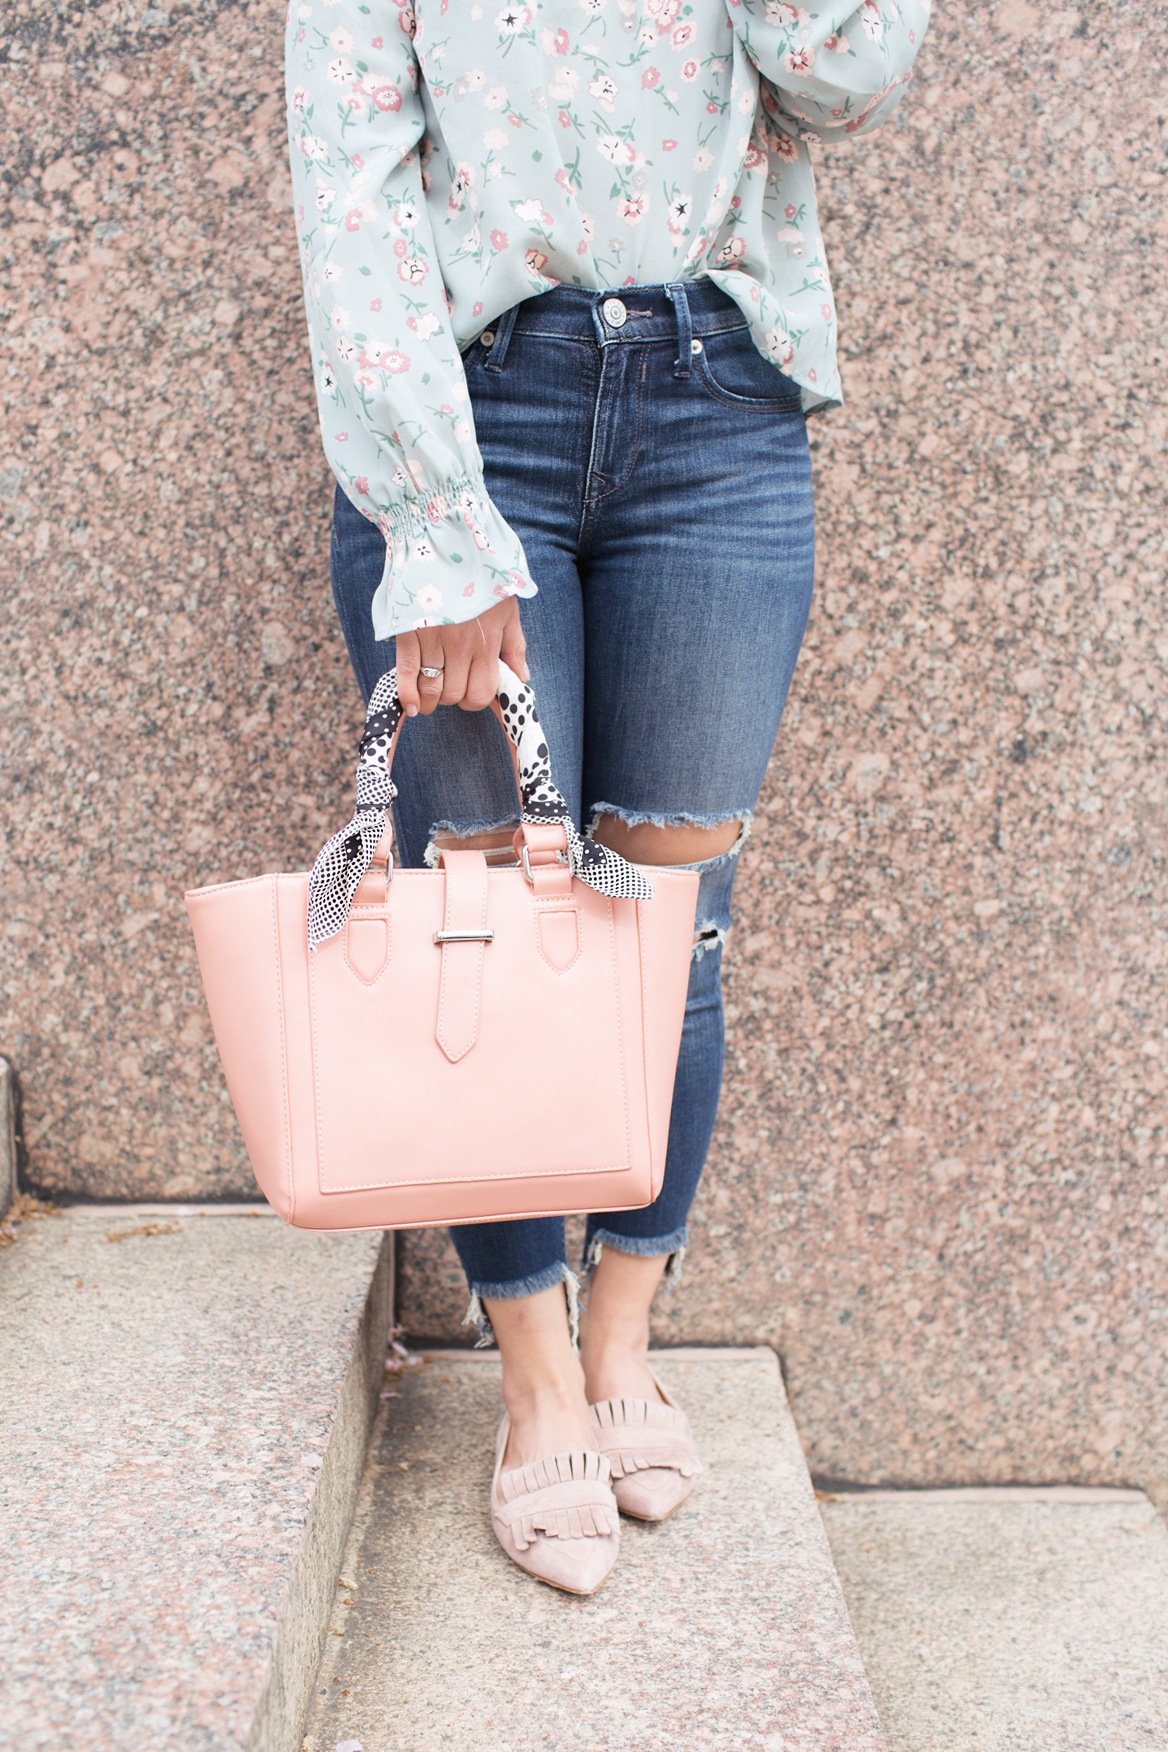 lifestyle blogger Roxanne of Glass of Glam wearing a wild blue denim floral top, express denim, cuore and pelle bag, and a vintage silk scarf